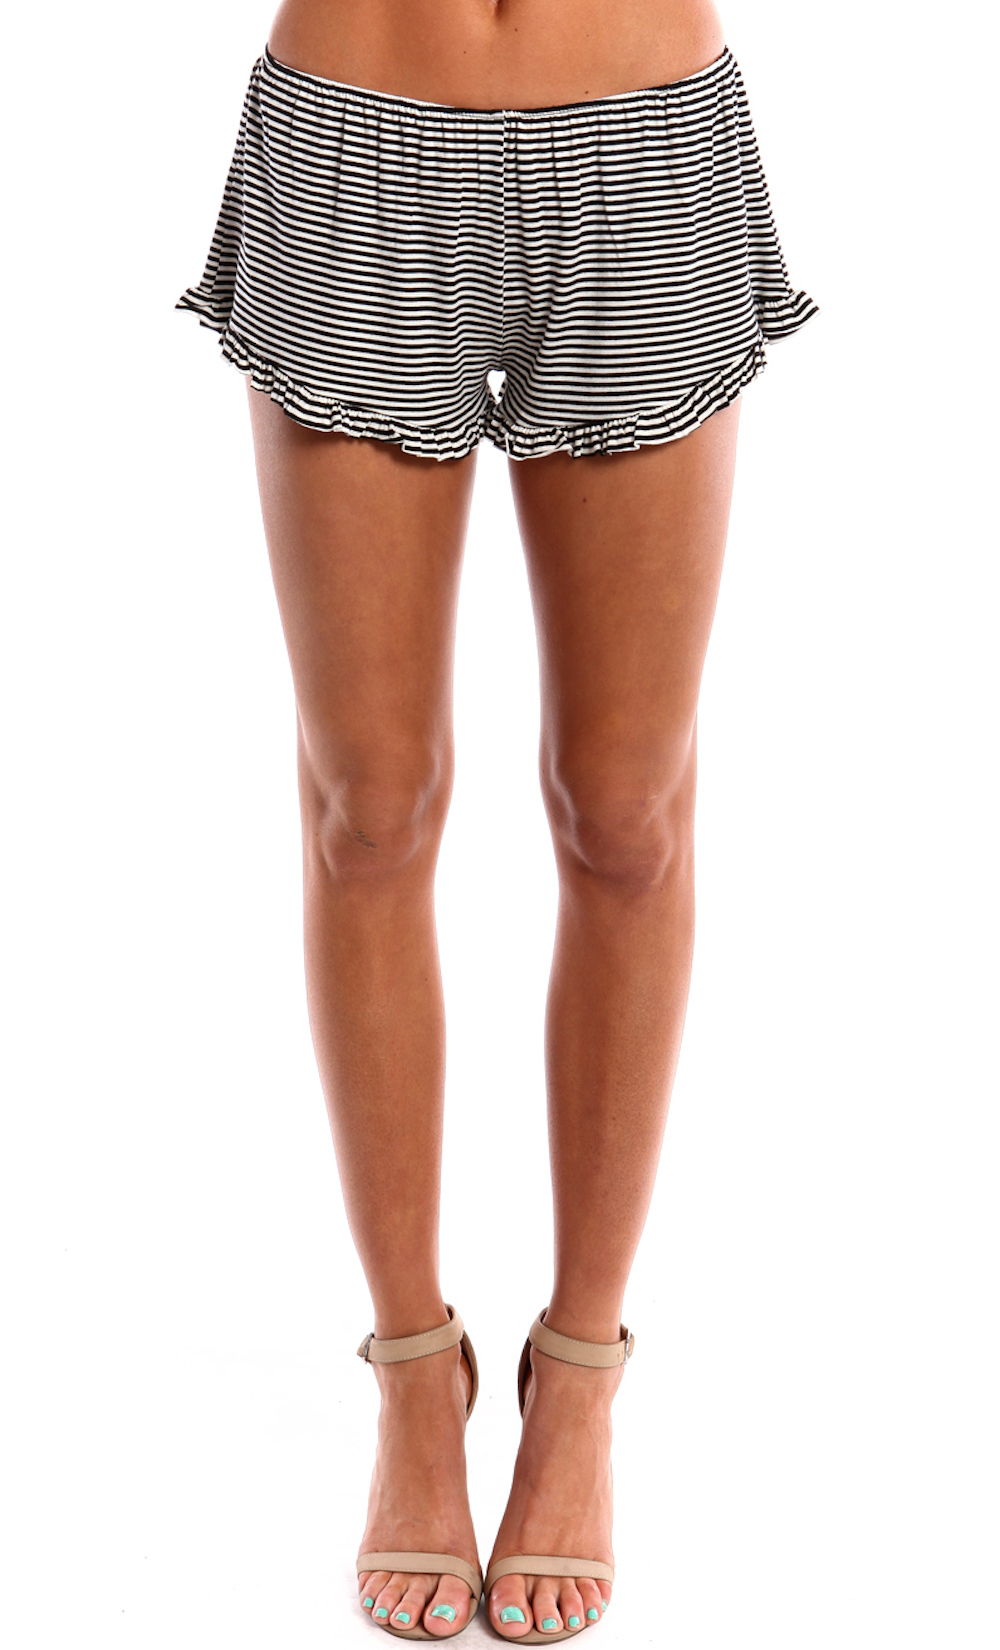 RUFFLED STRIPED SHORTS WWW.SHOPPUBLIK.COM